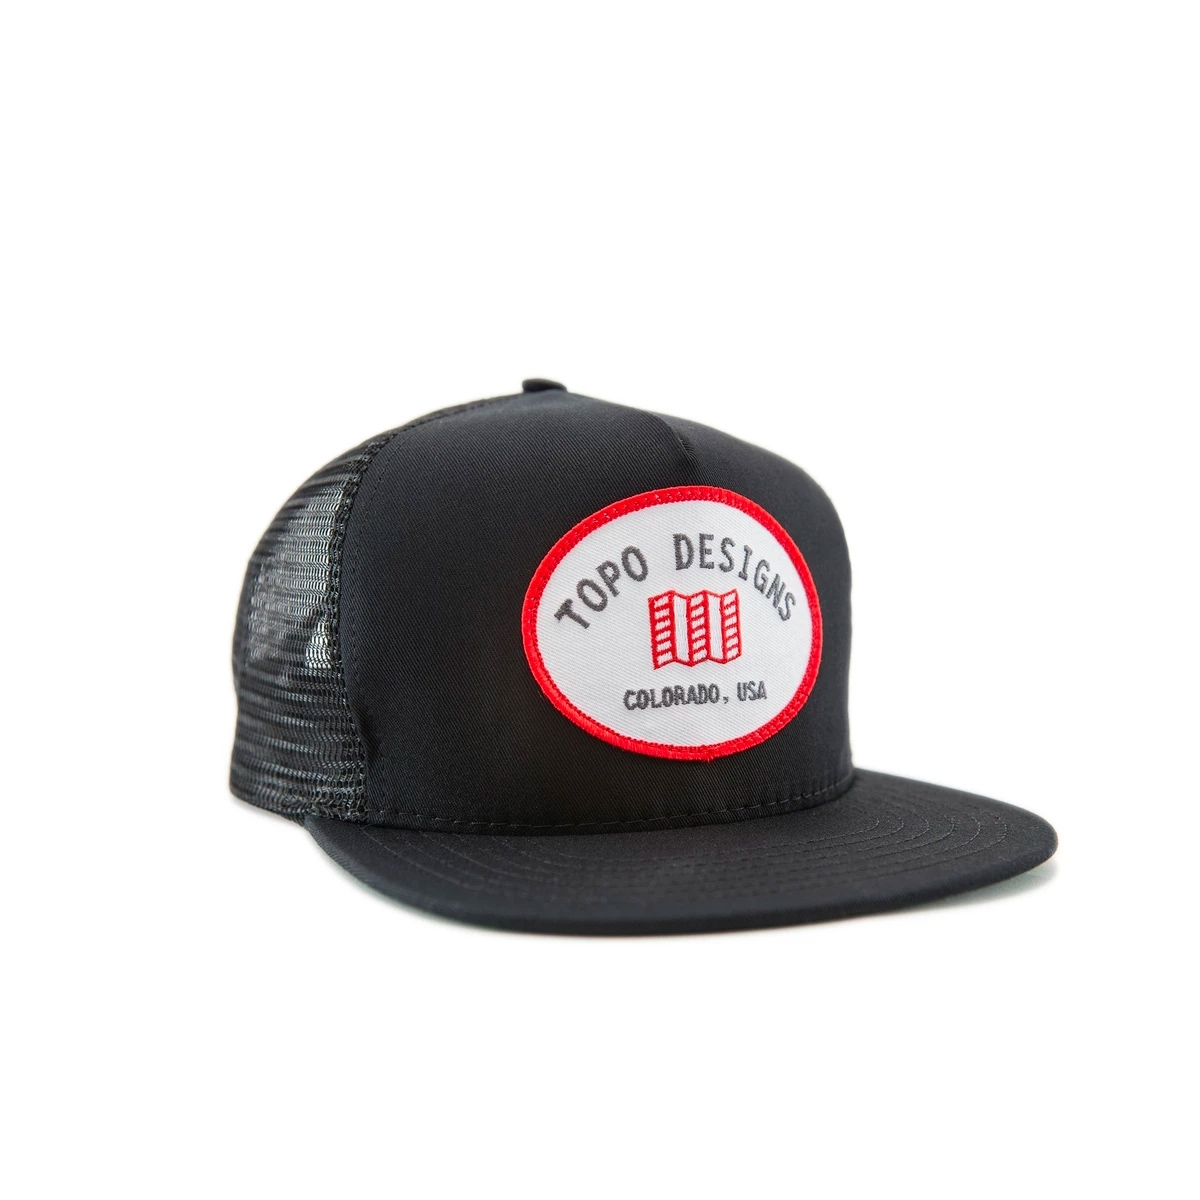 Topo Designs Snapback Hat Black